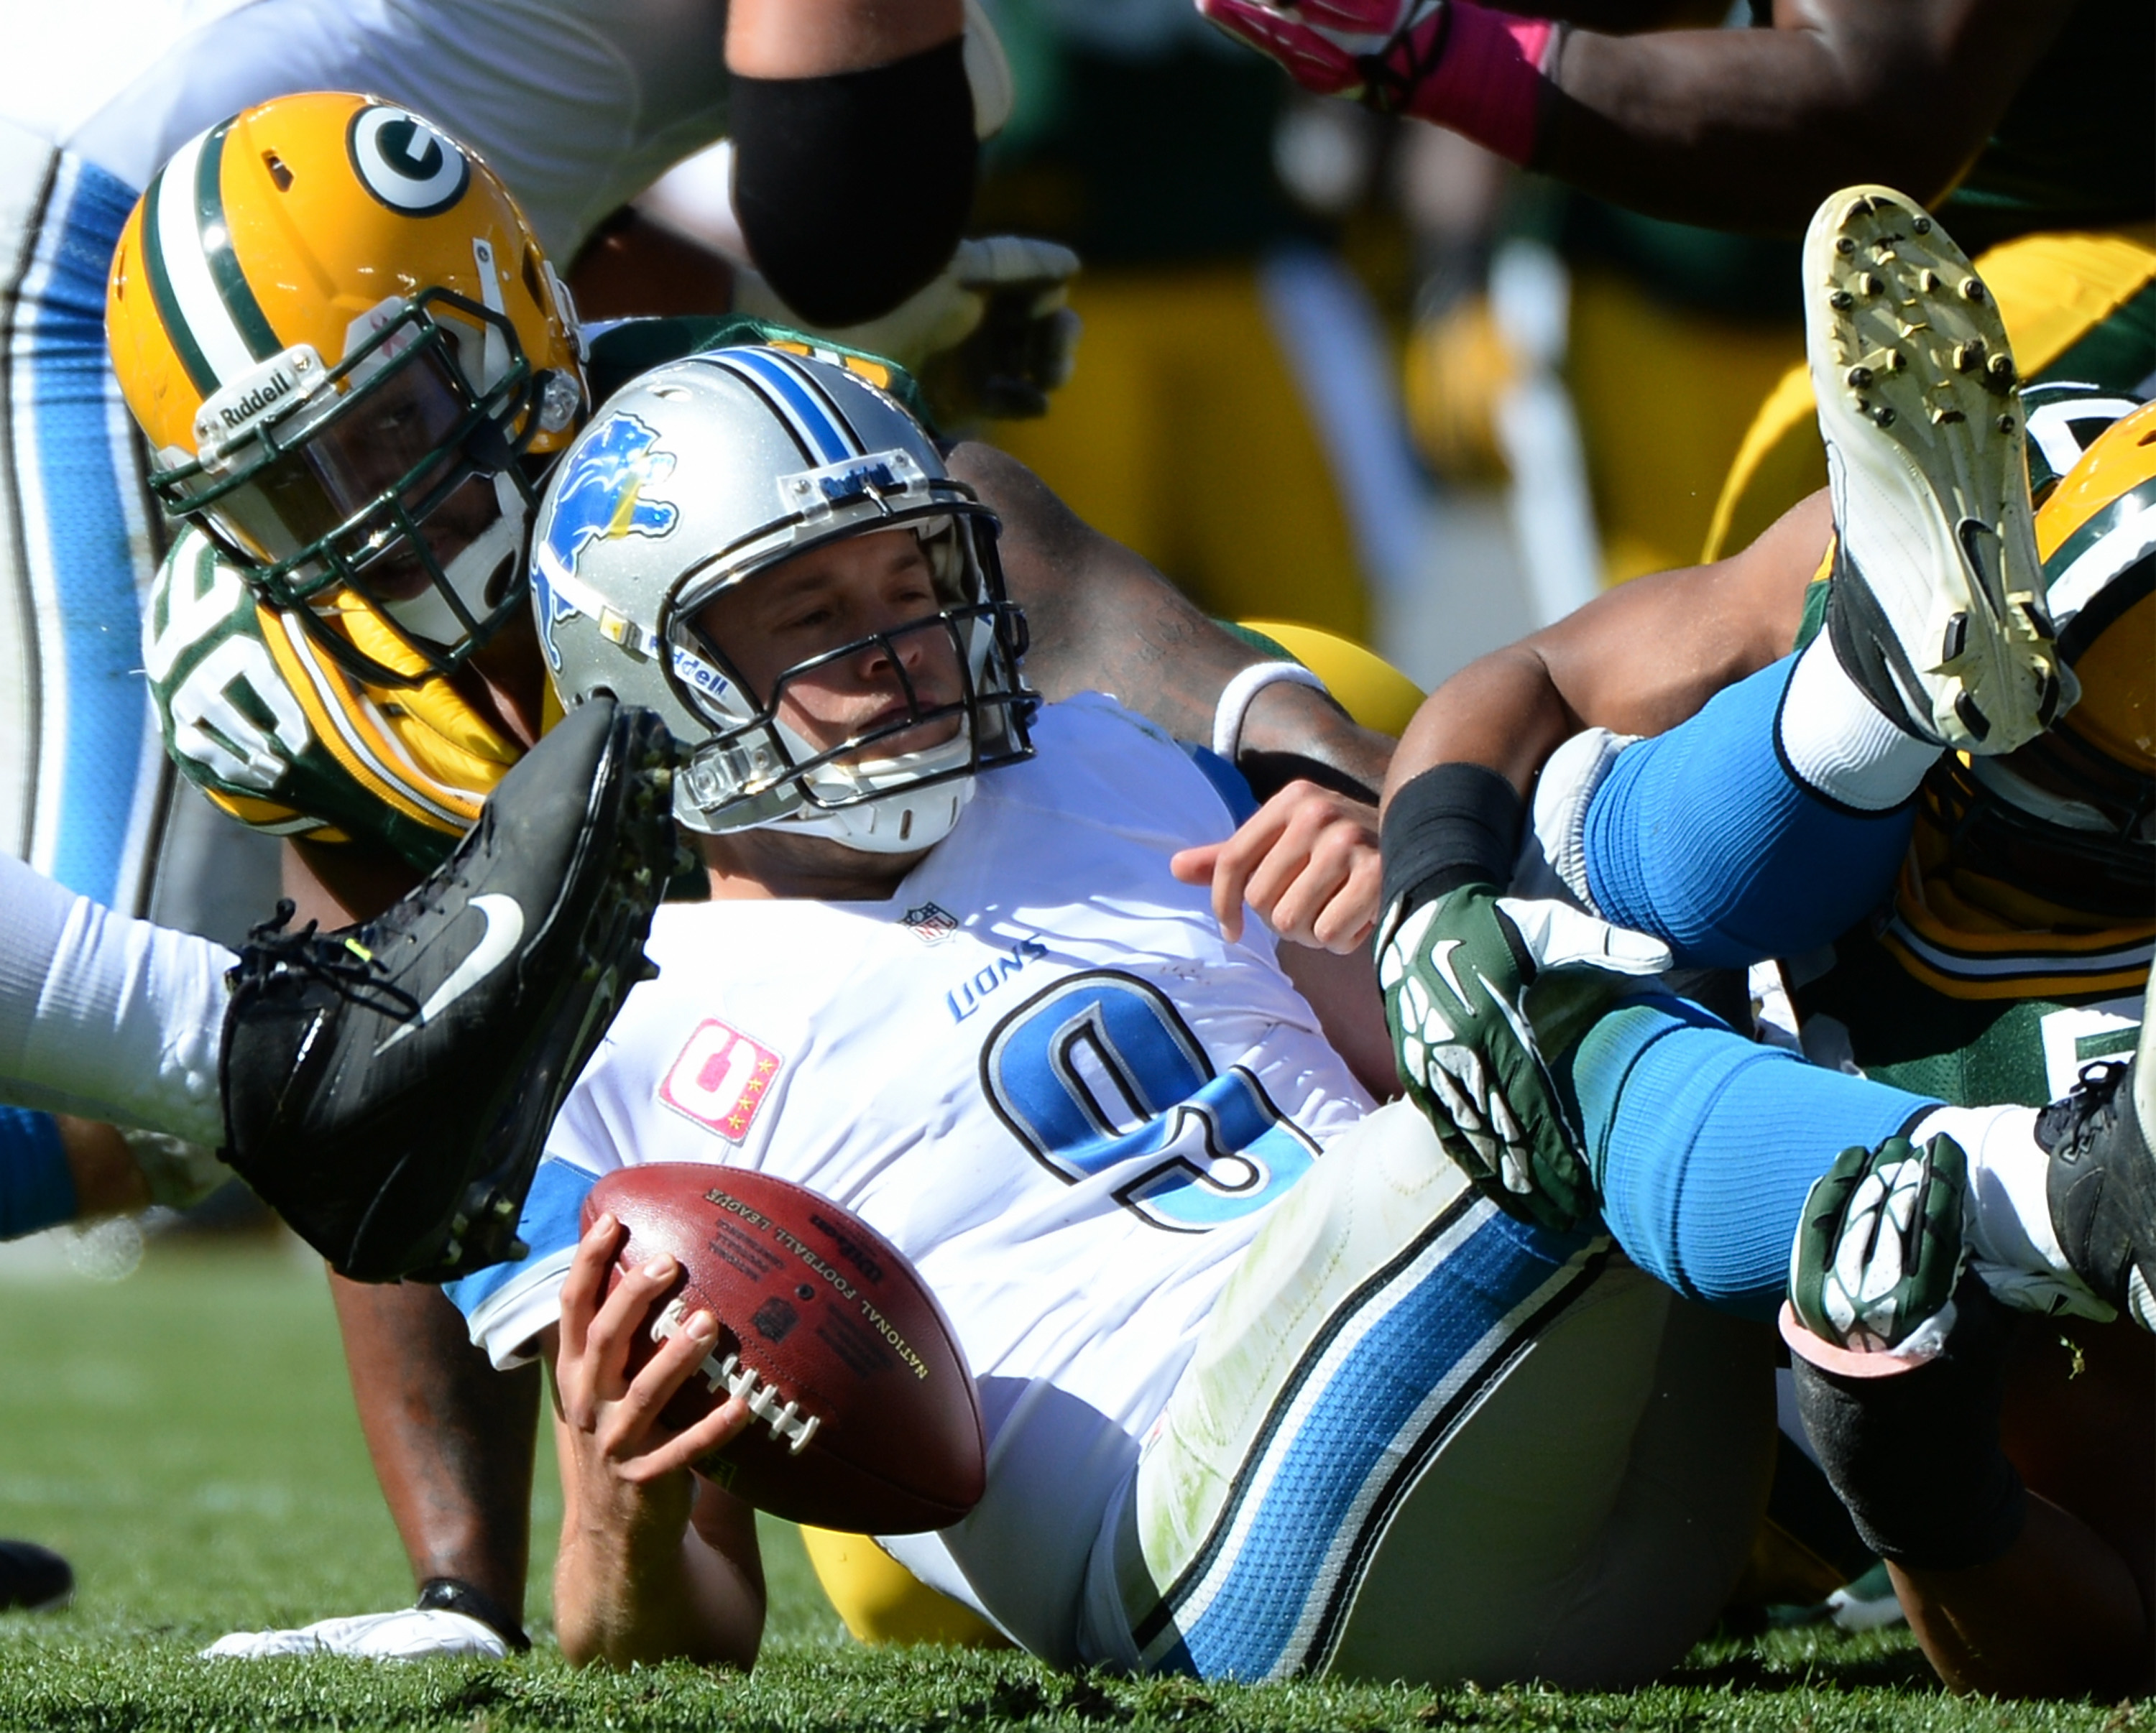 lions vs packers - photo #13